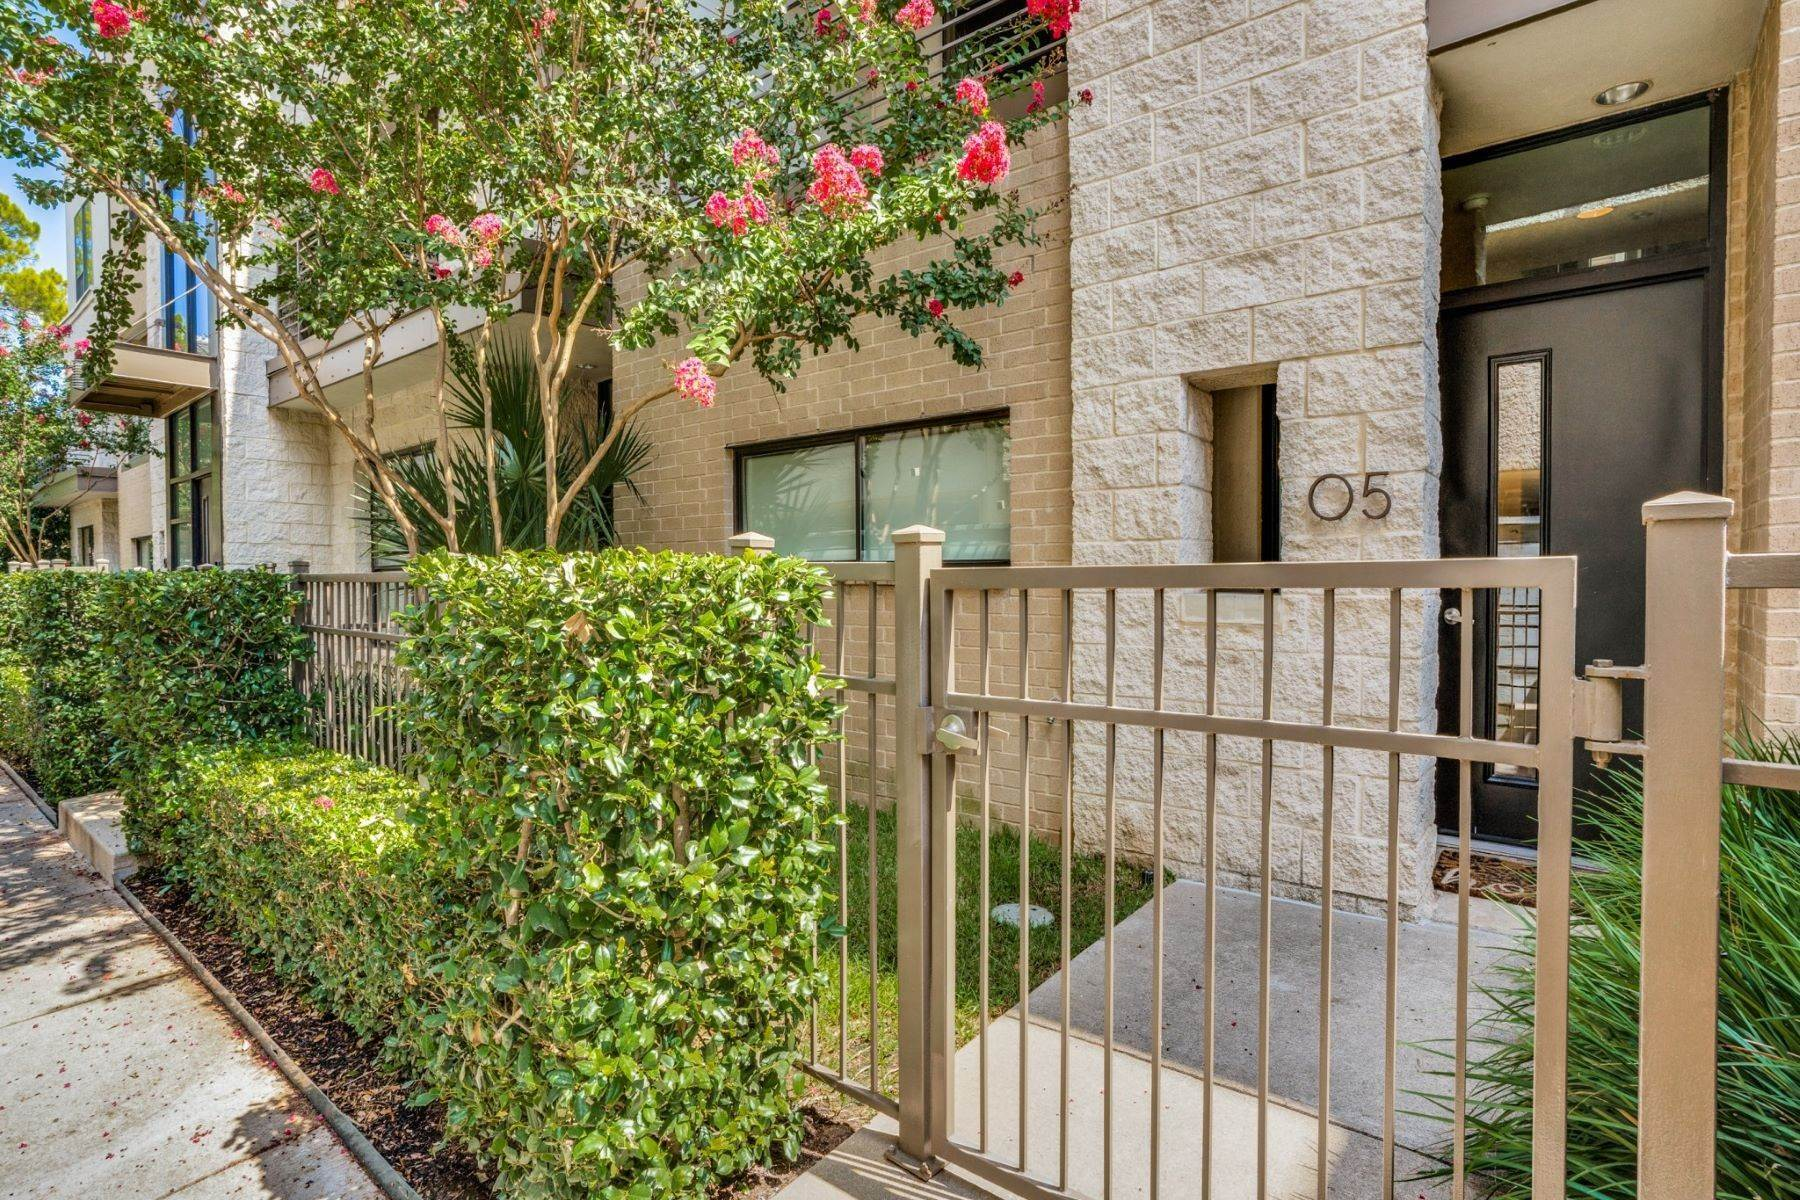 townhouses for Sale at Premier Location on Quiet Tree-Lined Street 4140 Newton Avenue, #5 Dallas, Texas 75219 United States